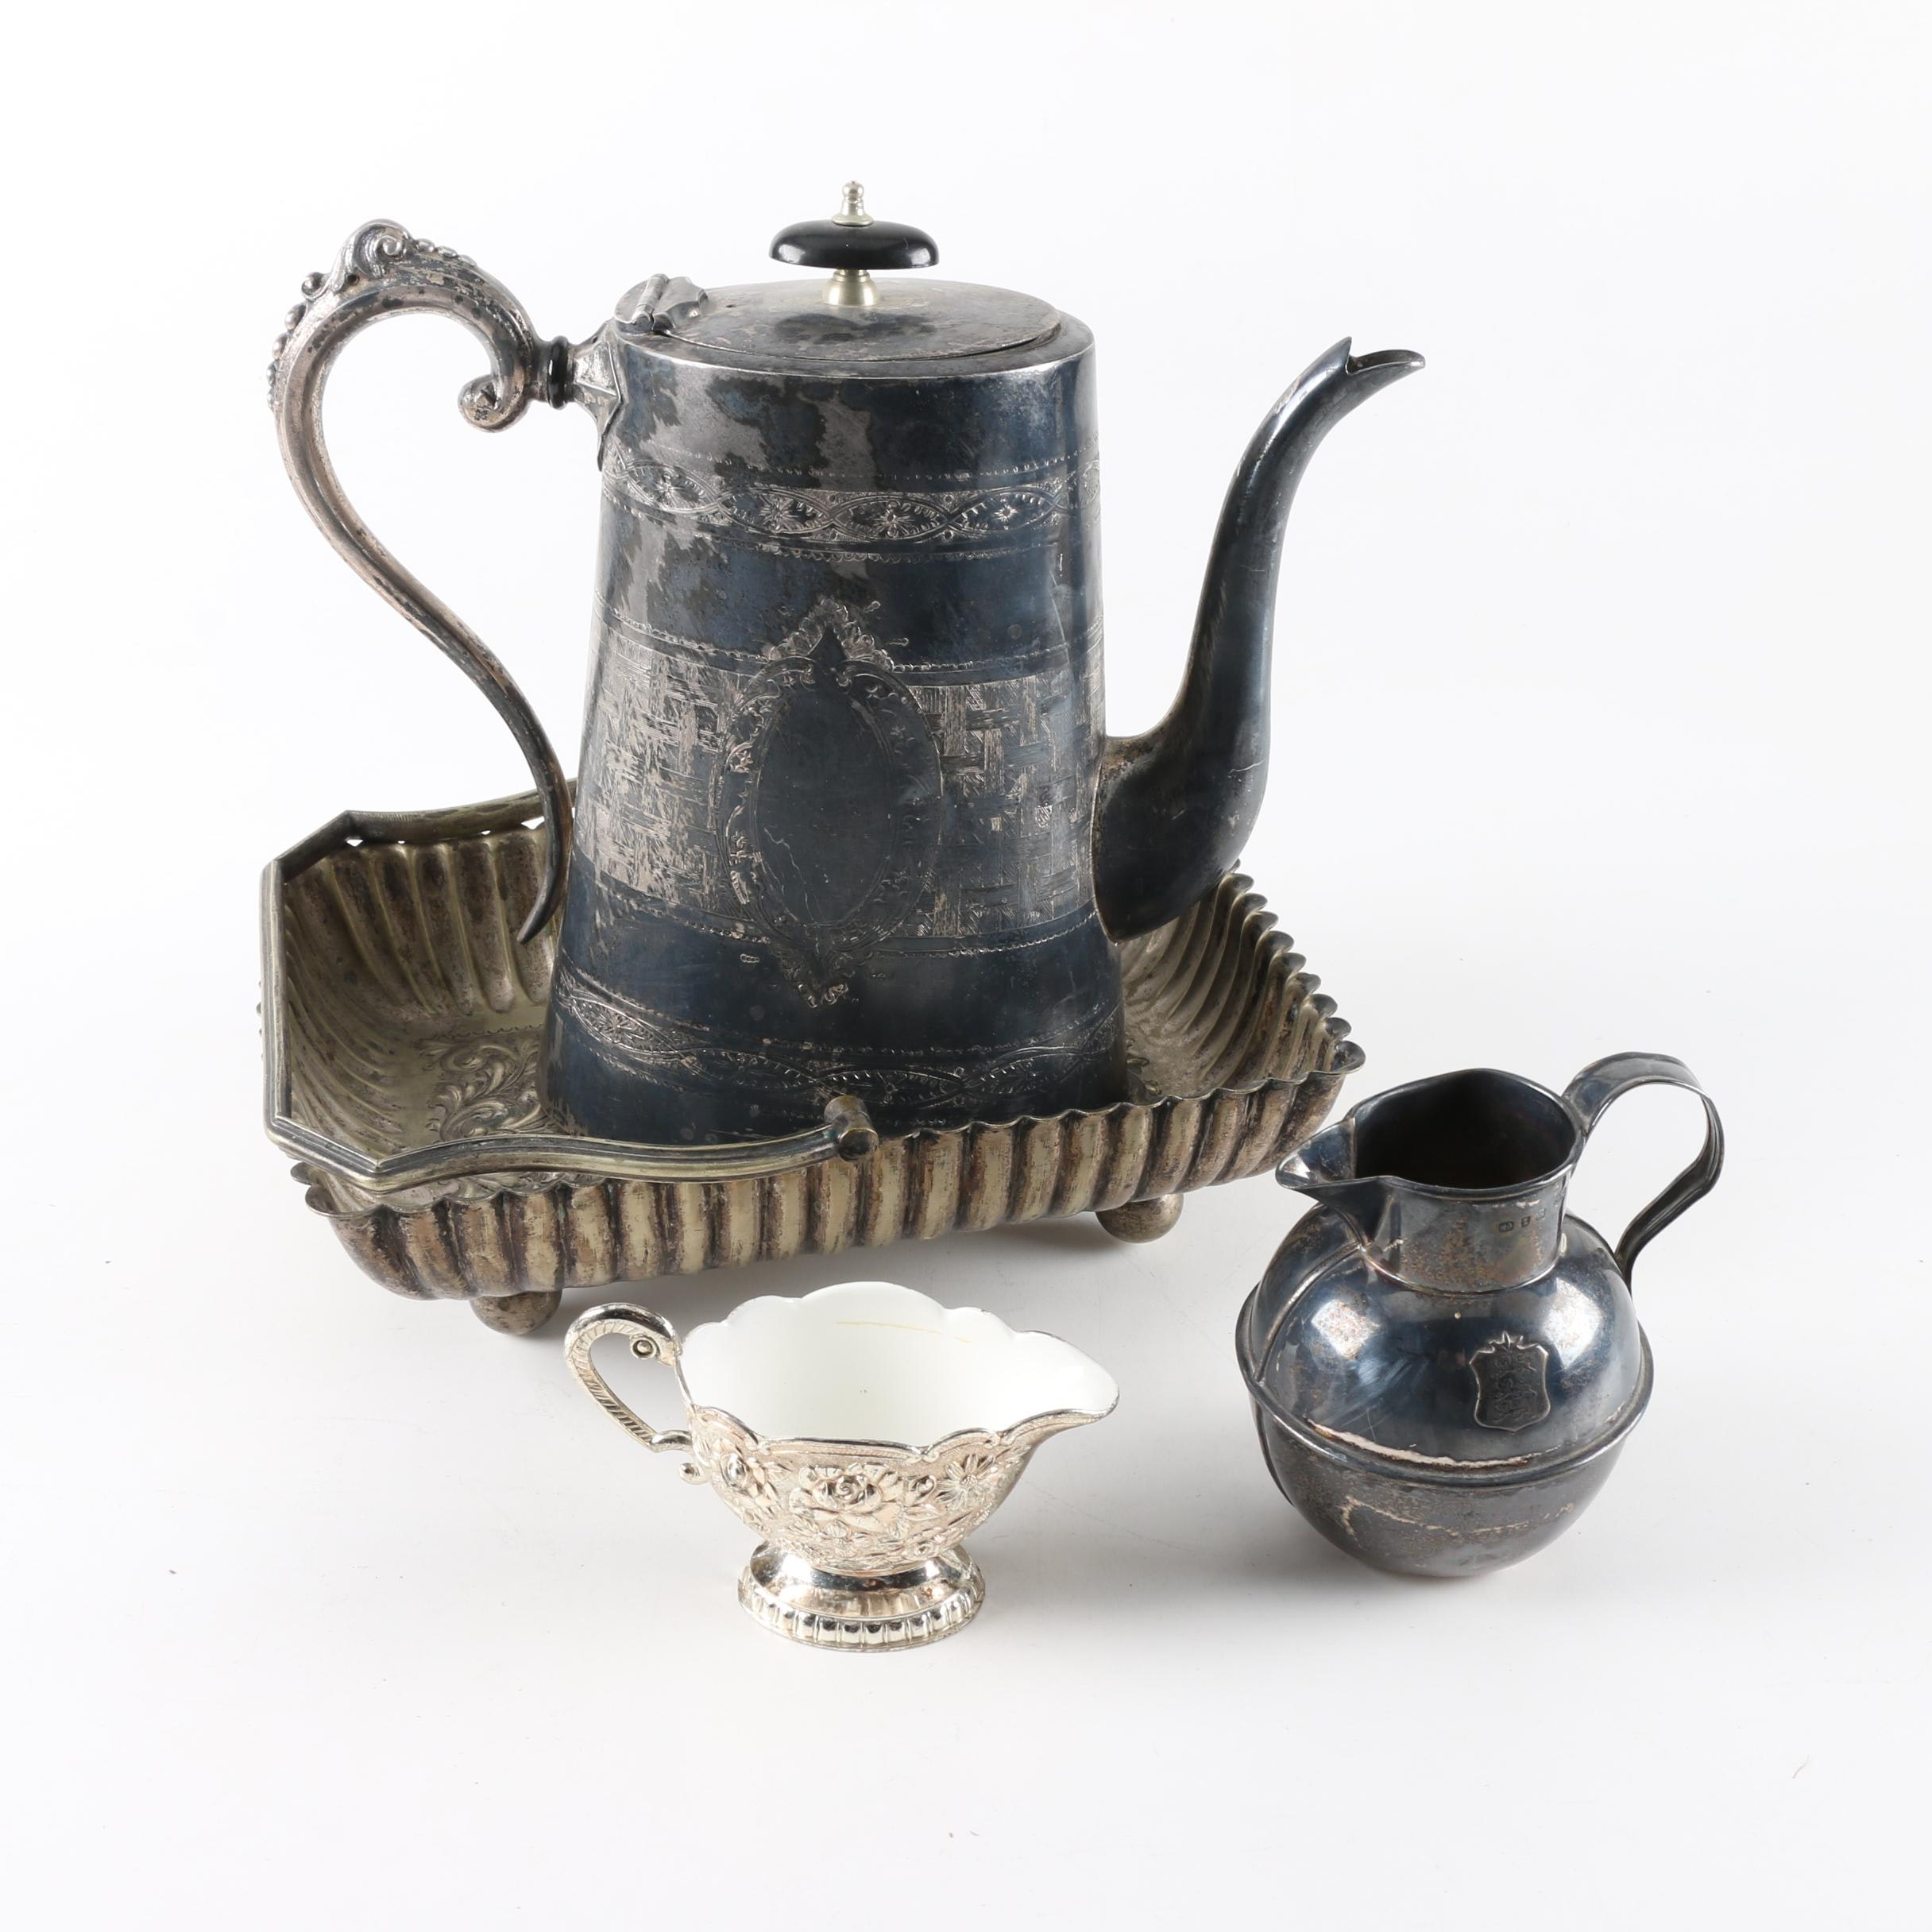 1899 Birmingham Sterling Silver Creamer and Assorted Silver Plate Serveware